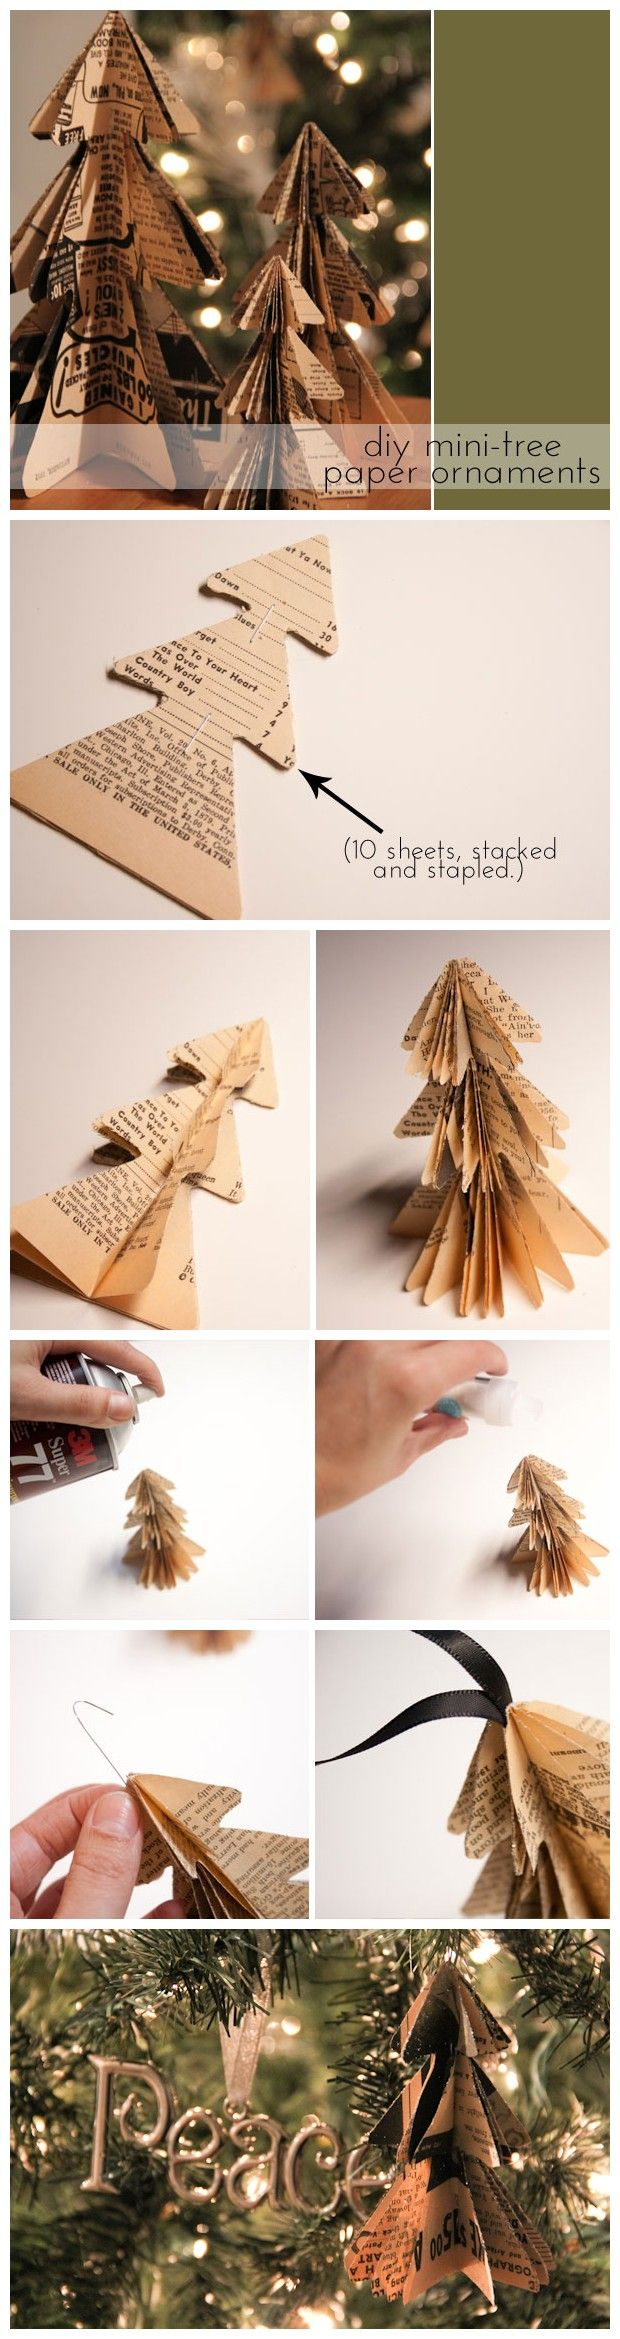 Easy paper tree. Could be done in holiday colored paper for decorations. Could also be set in groups, instead of used as Christmas ornament for your Christmas tree.